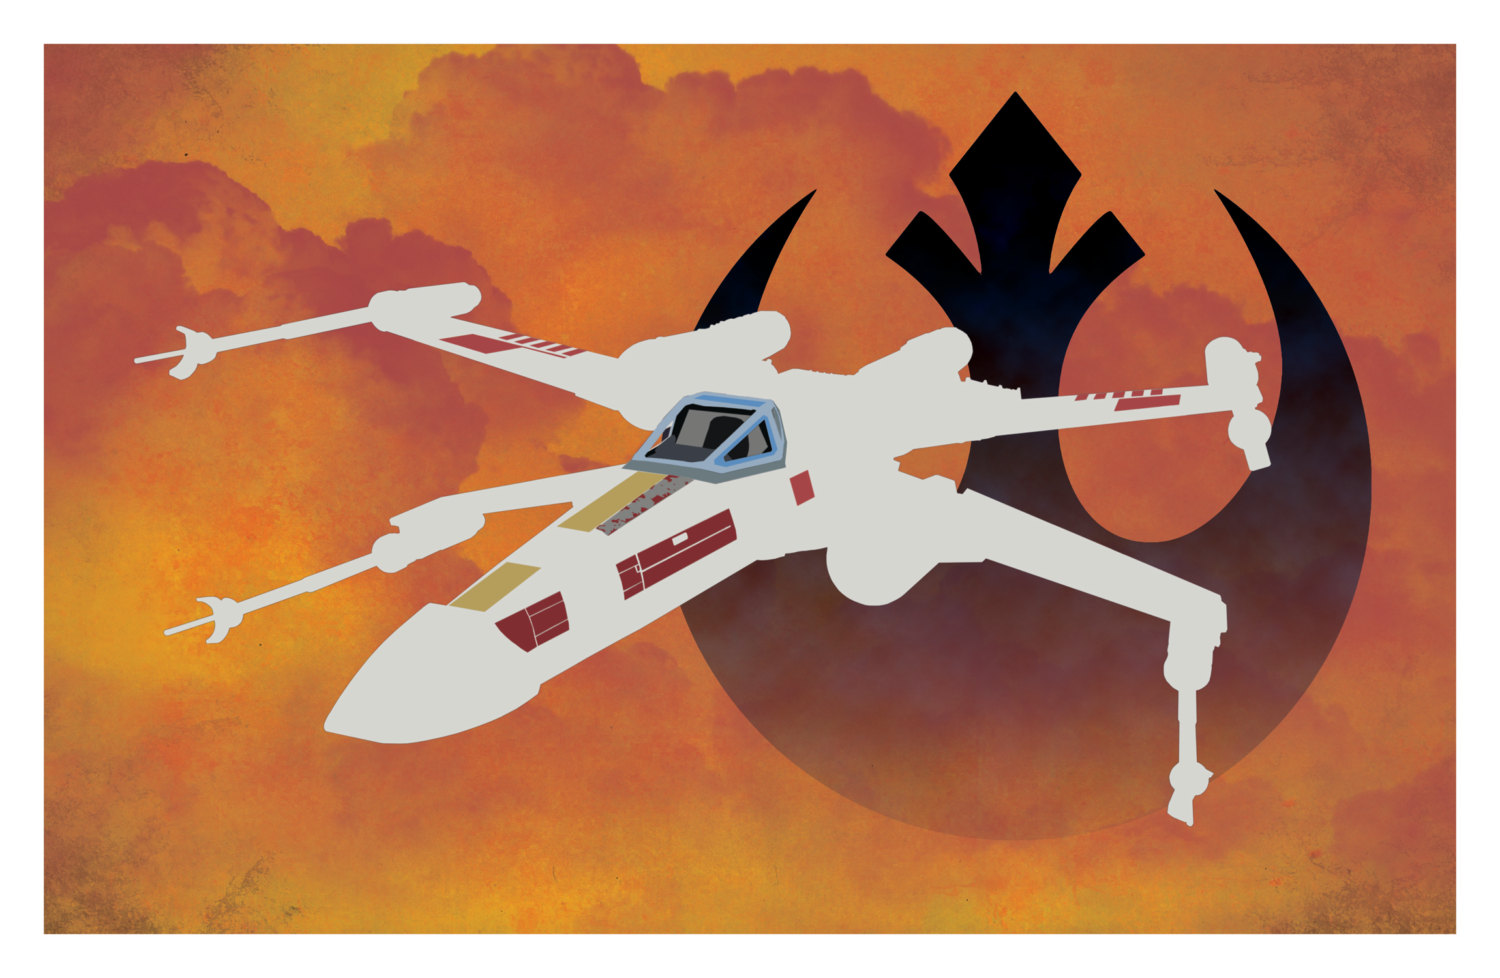 X-Wing Star Wars Rebel Alliance Poster by Brian Linss